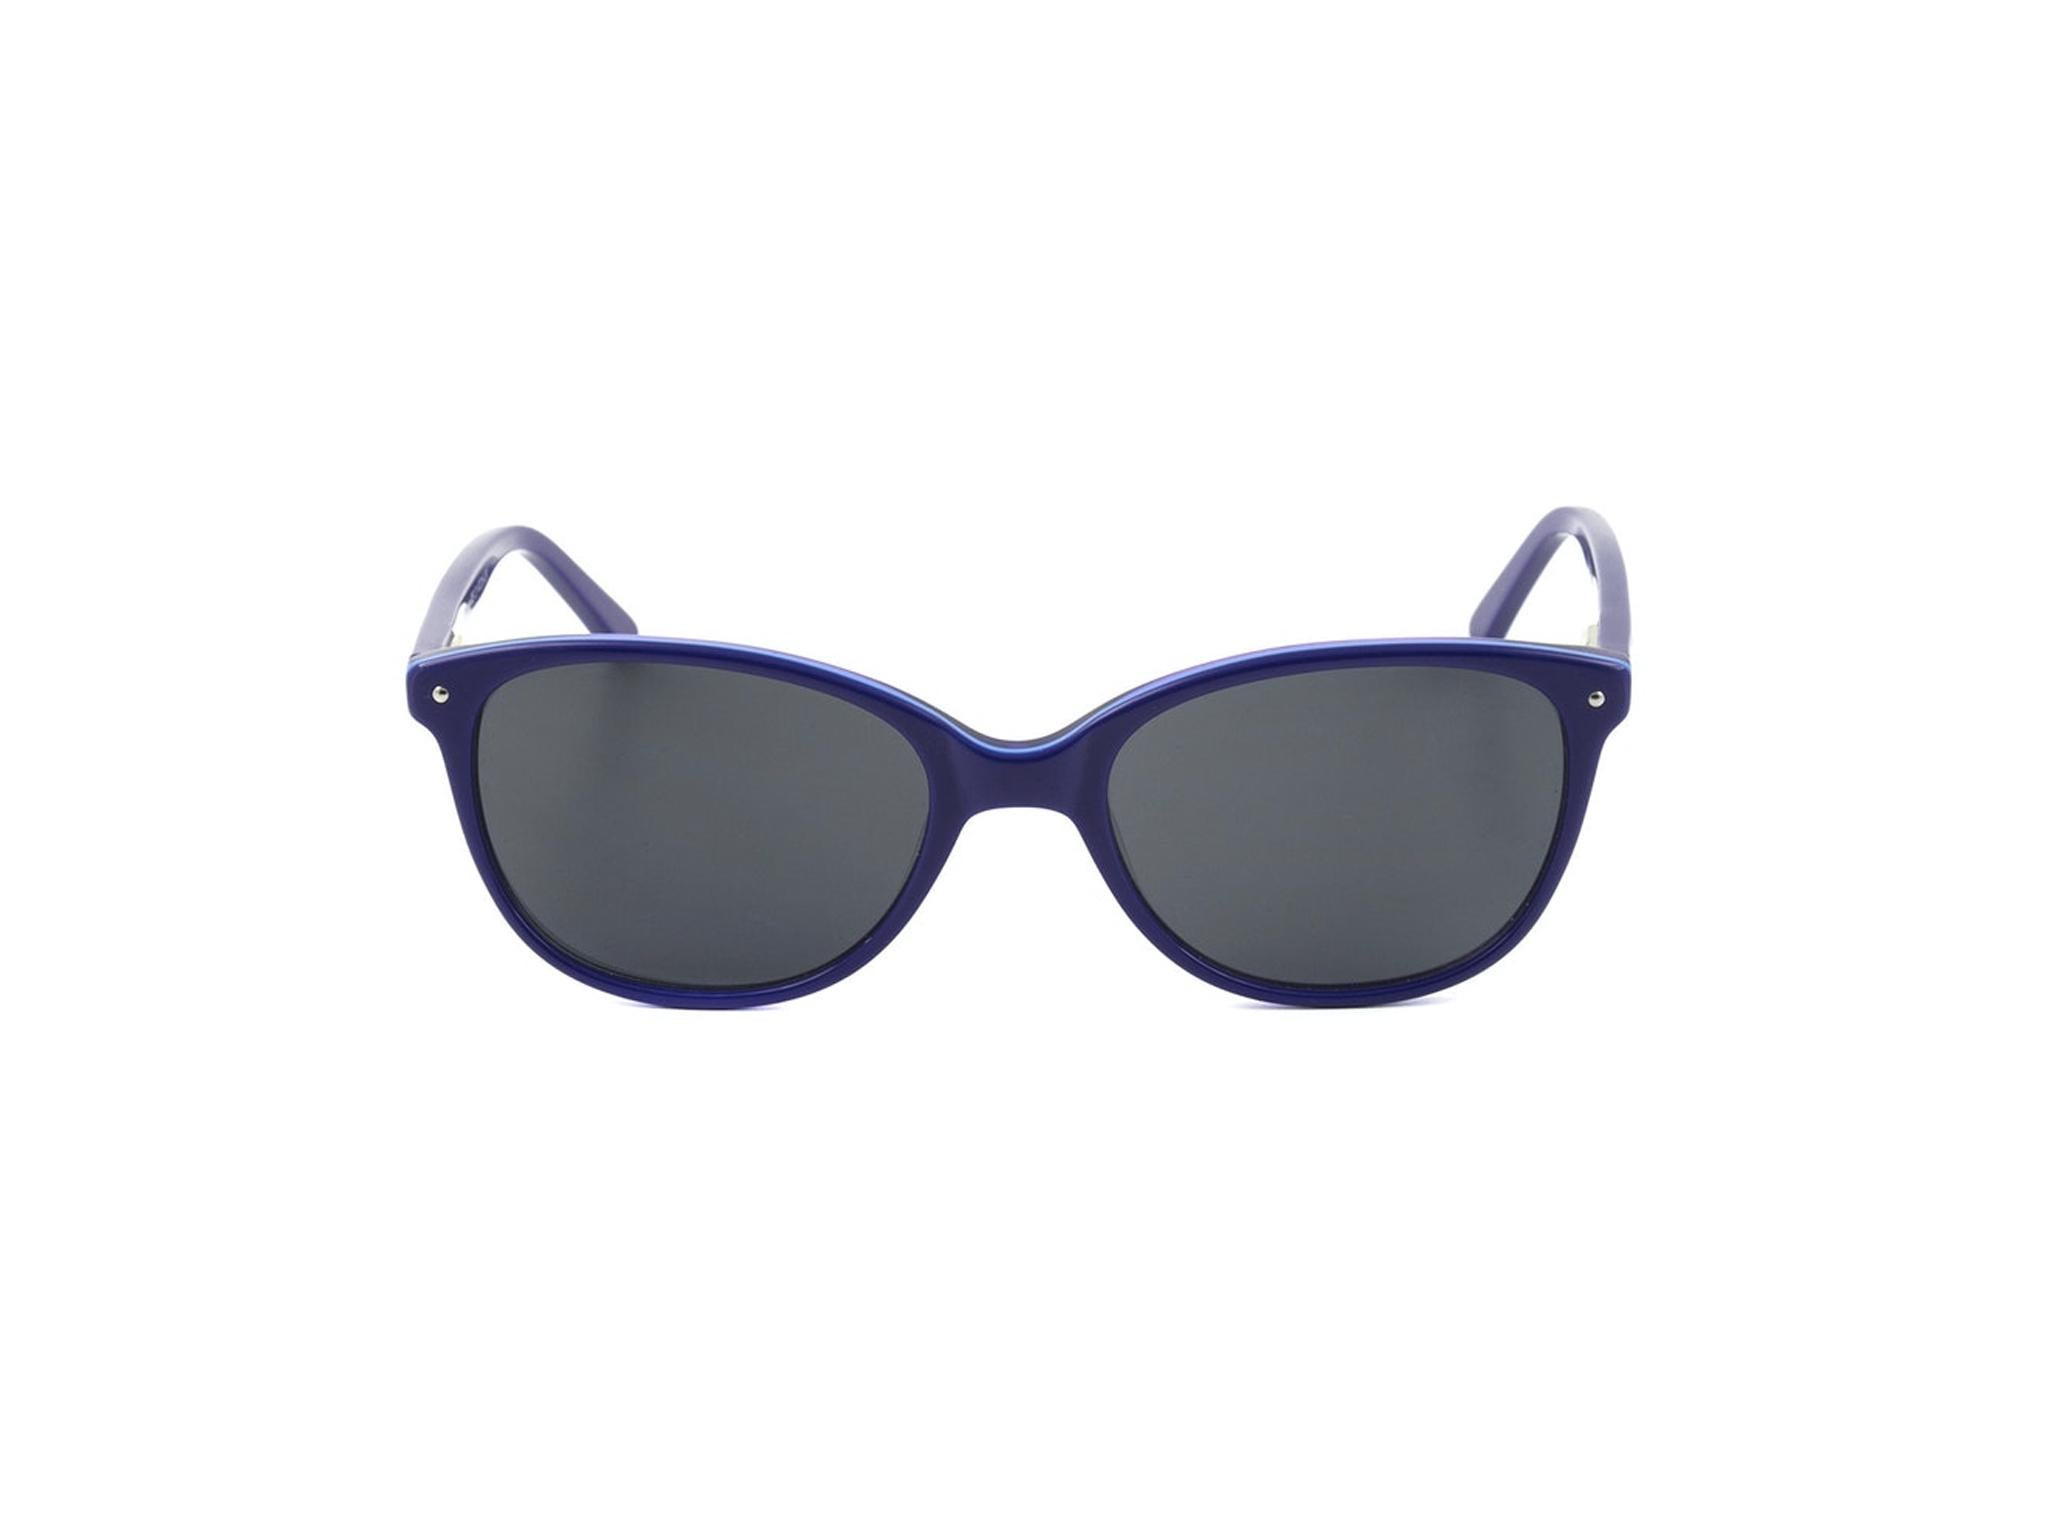 Children//infant Chicco Sunglasses 100/% UV Polarized Shiny Blue Matching Case 0M+